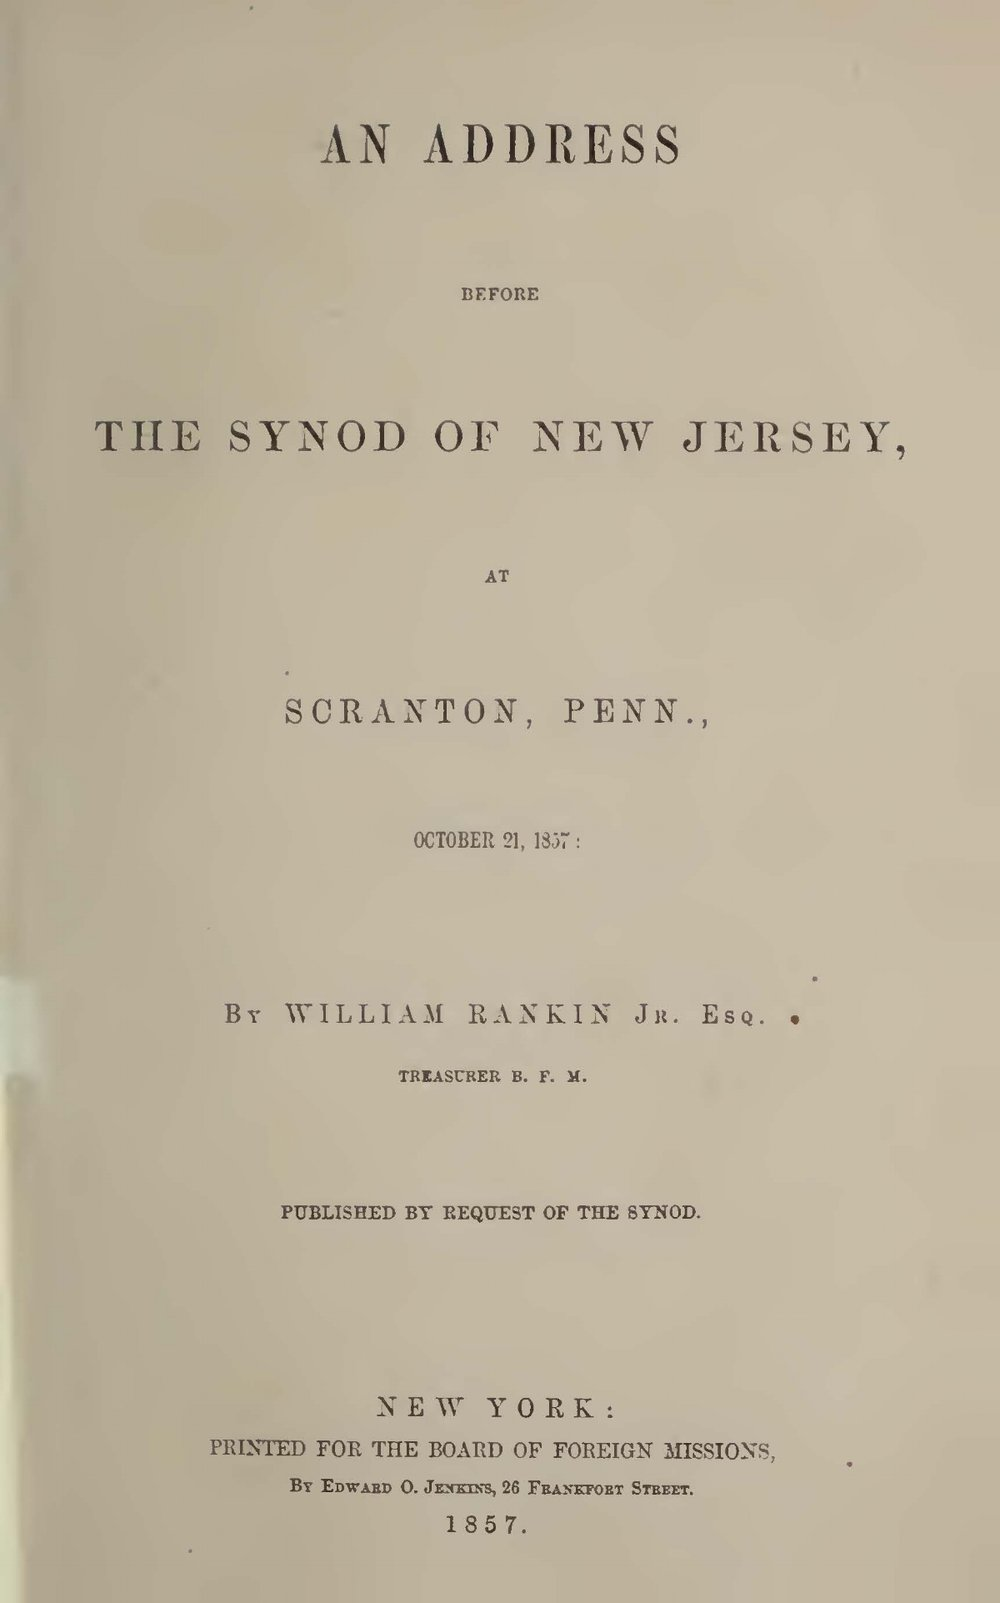 Rankin, William, Address Before the Synod of New Jersey Title Page.jpg